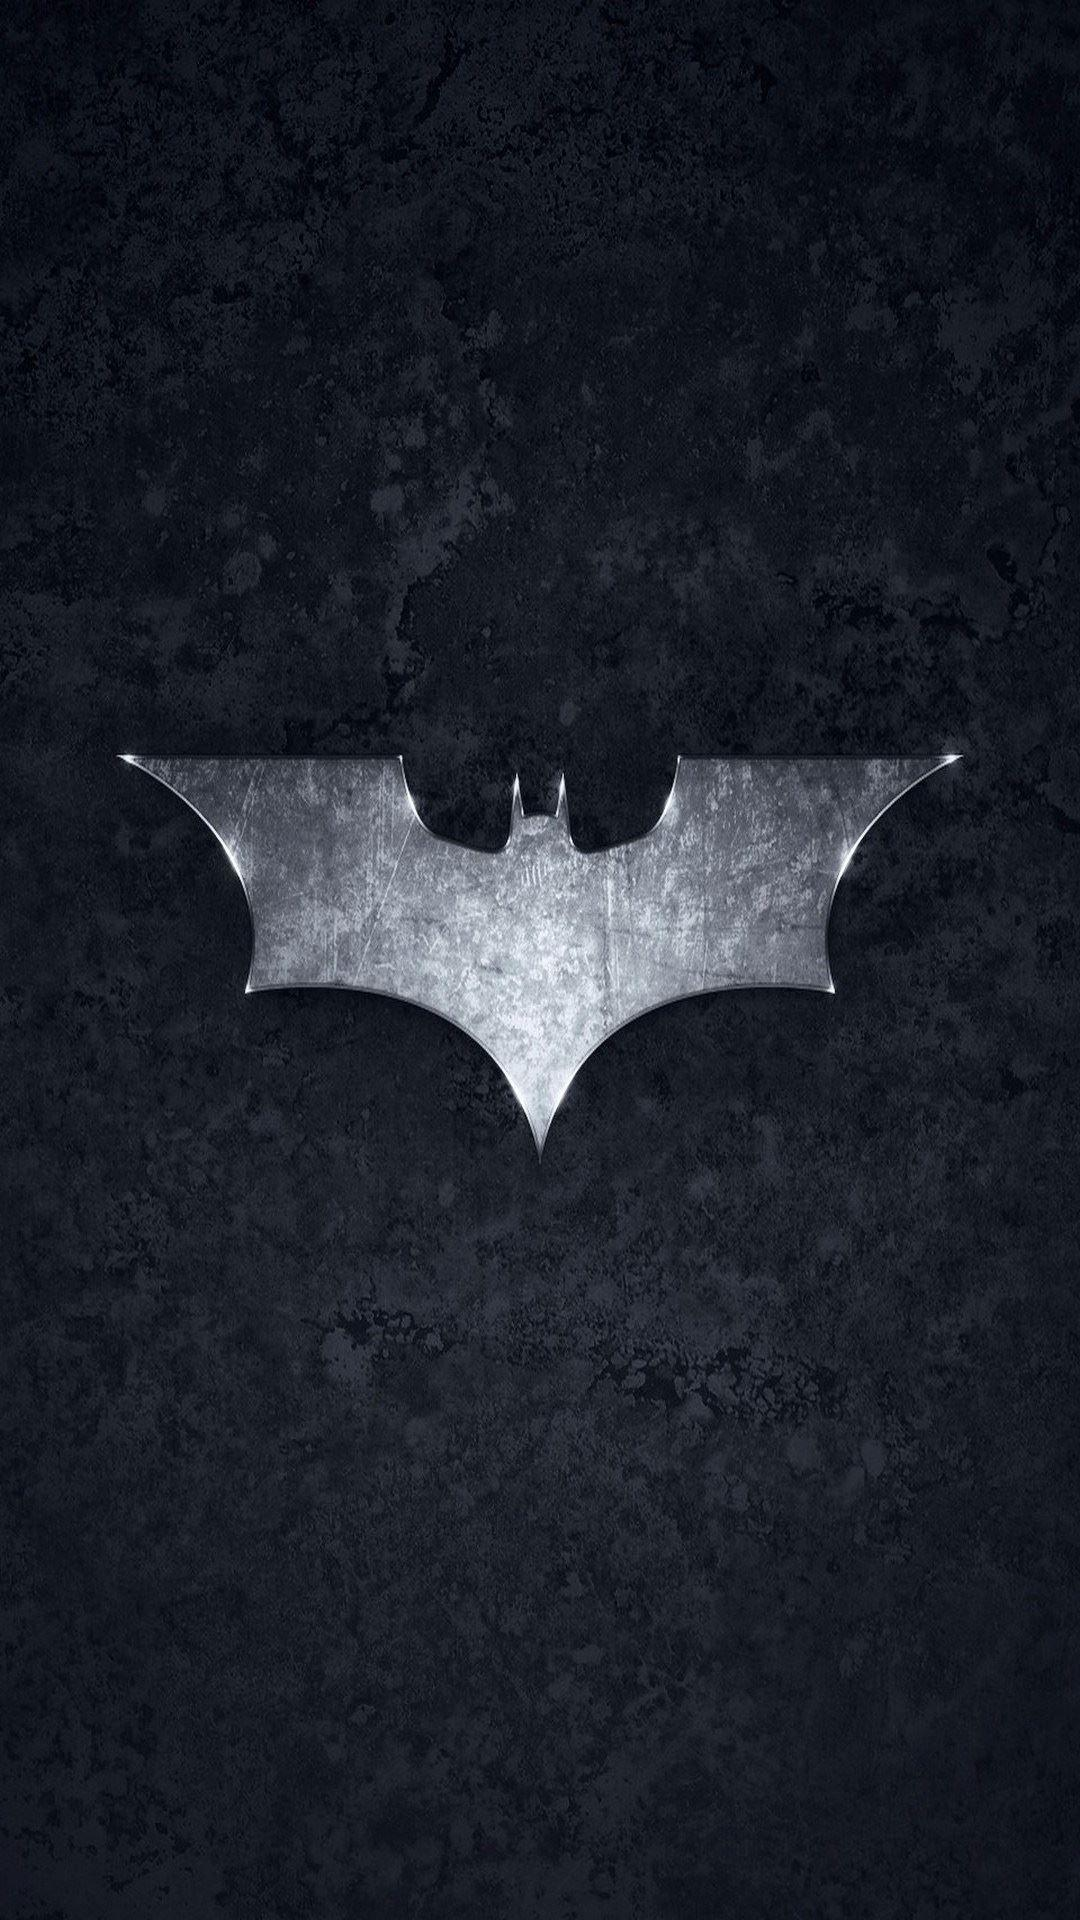 batman wallpapers for android Group with 61 items